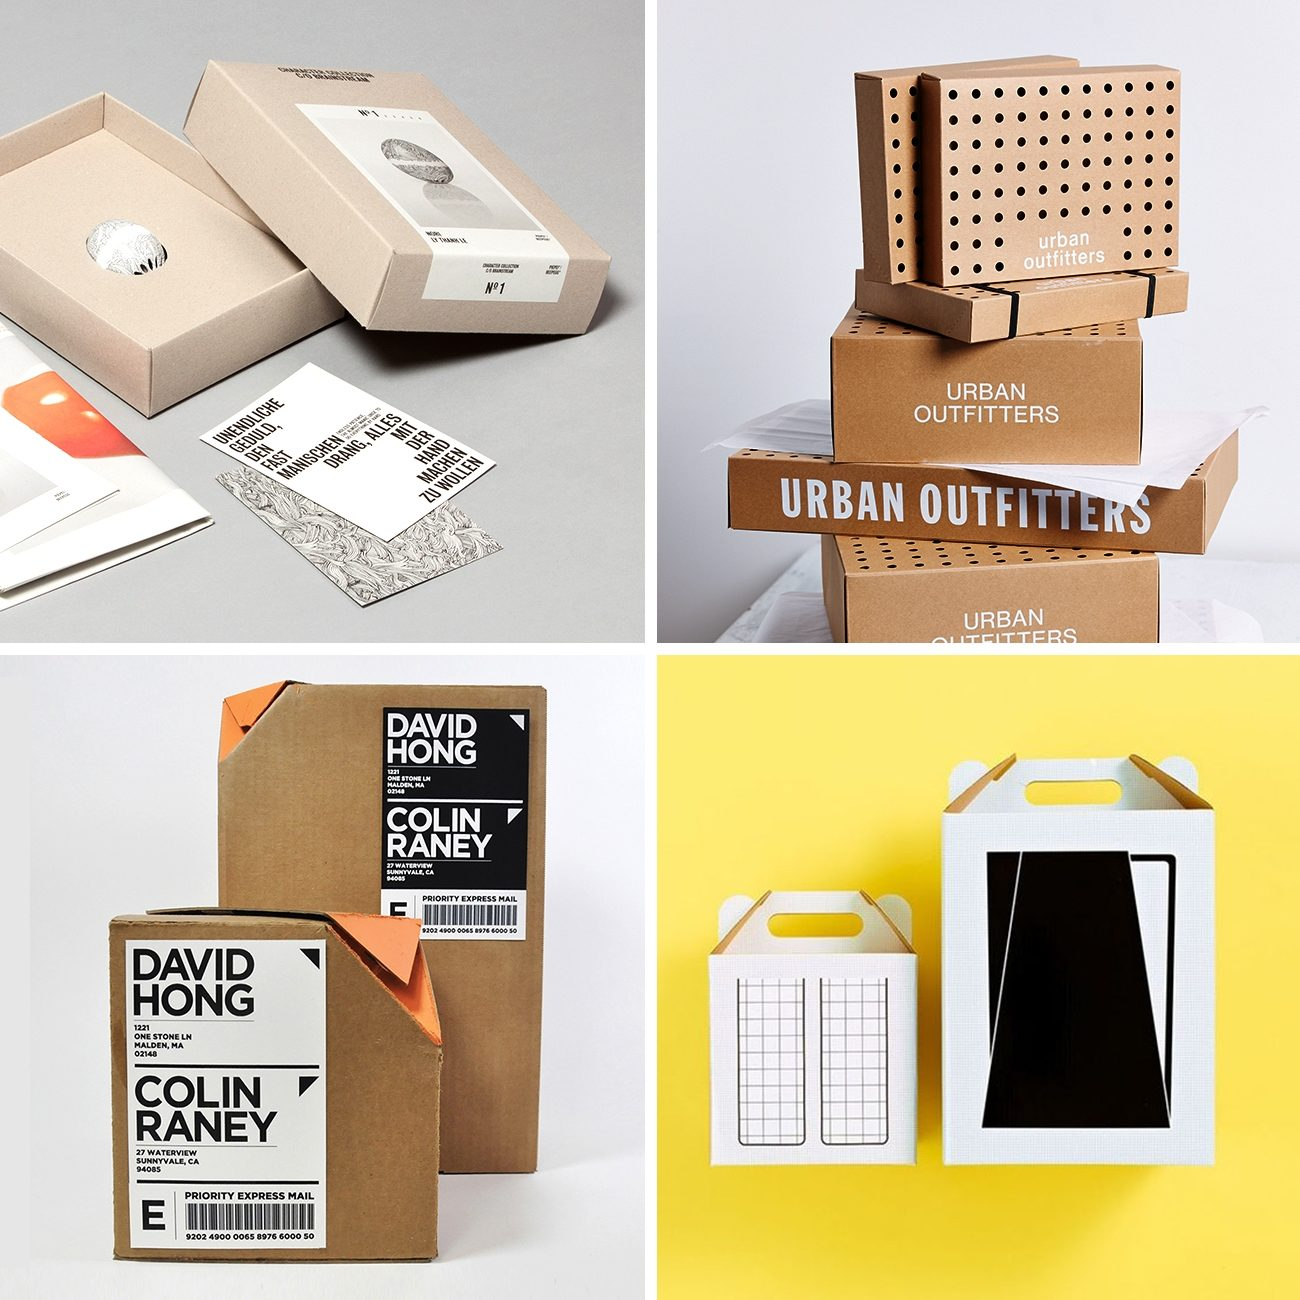 60 Ideas to Spruce Up Your Holiday Packaging Design - Lumi Blog